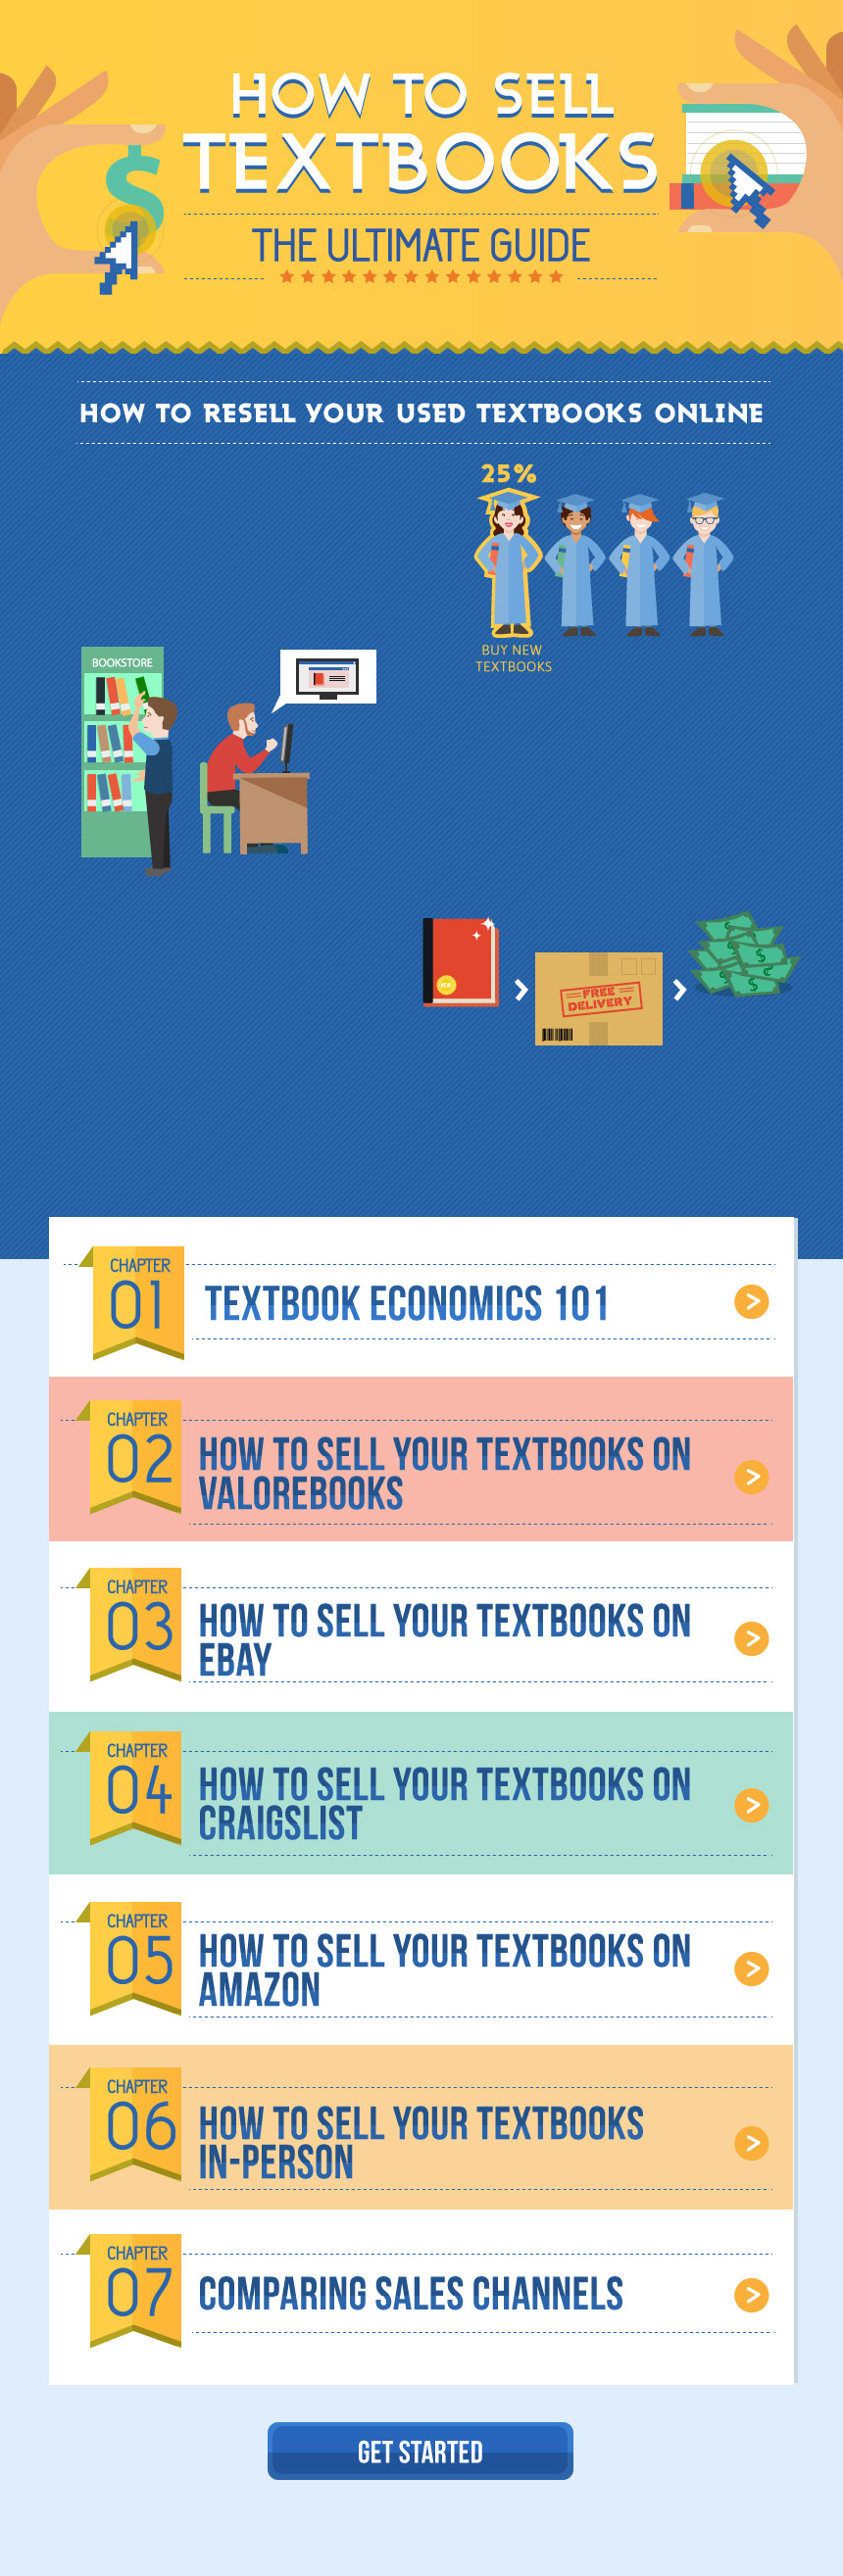 Textbooks - Up to 90% Off! Biblio brings you millions of textbooks, academic texts and other course reading material. Together with thousands of independent booksellers around the world, we help students find the book they need at a price they can afford - often saving them hundreds of dollars.